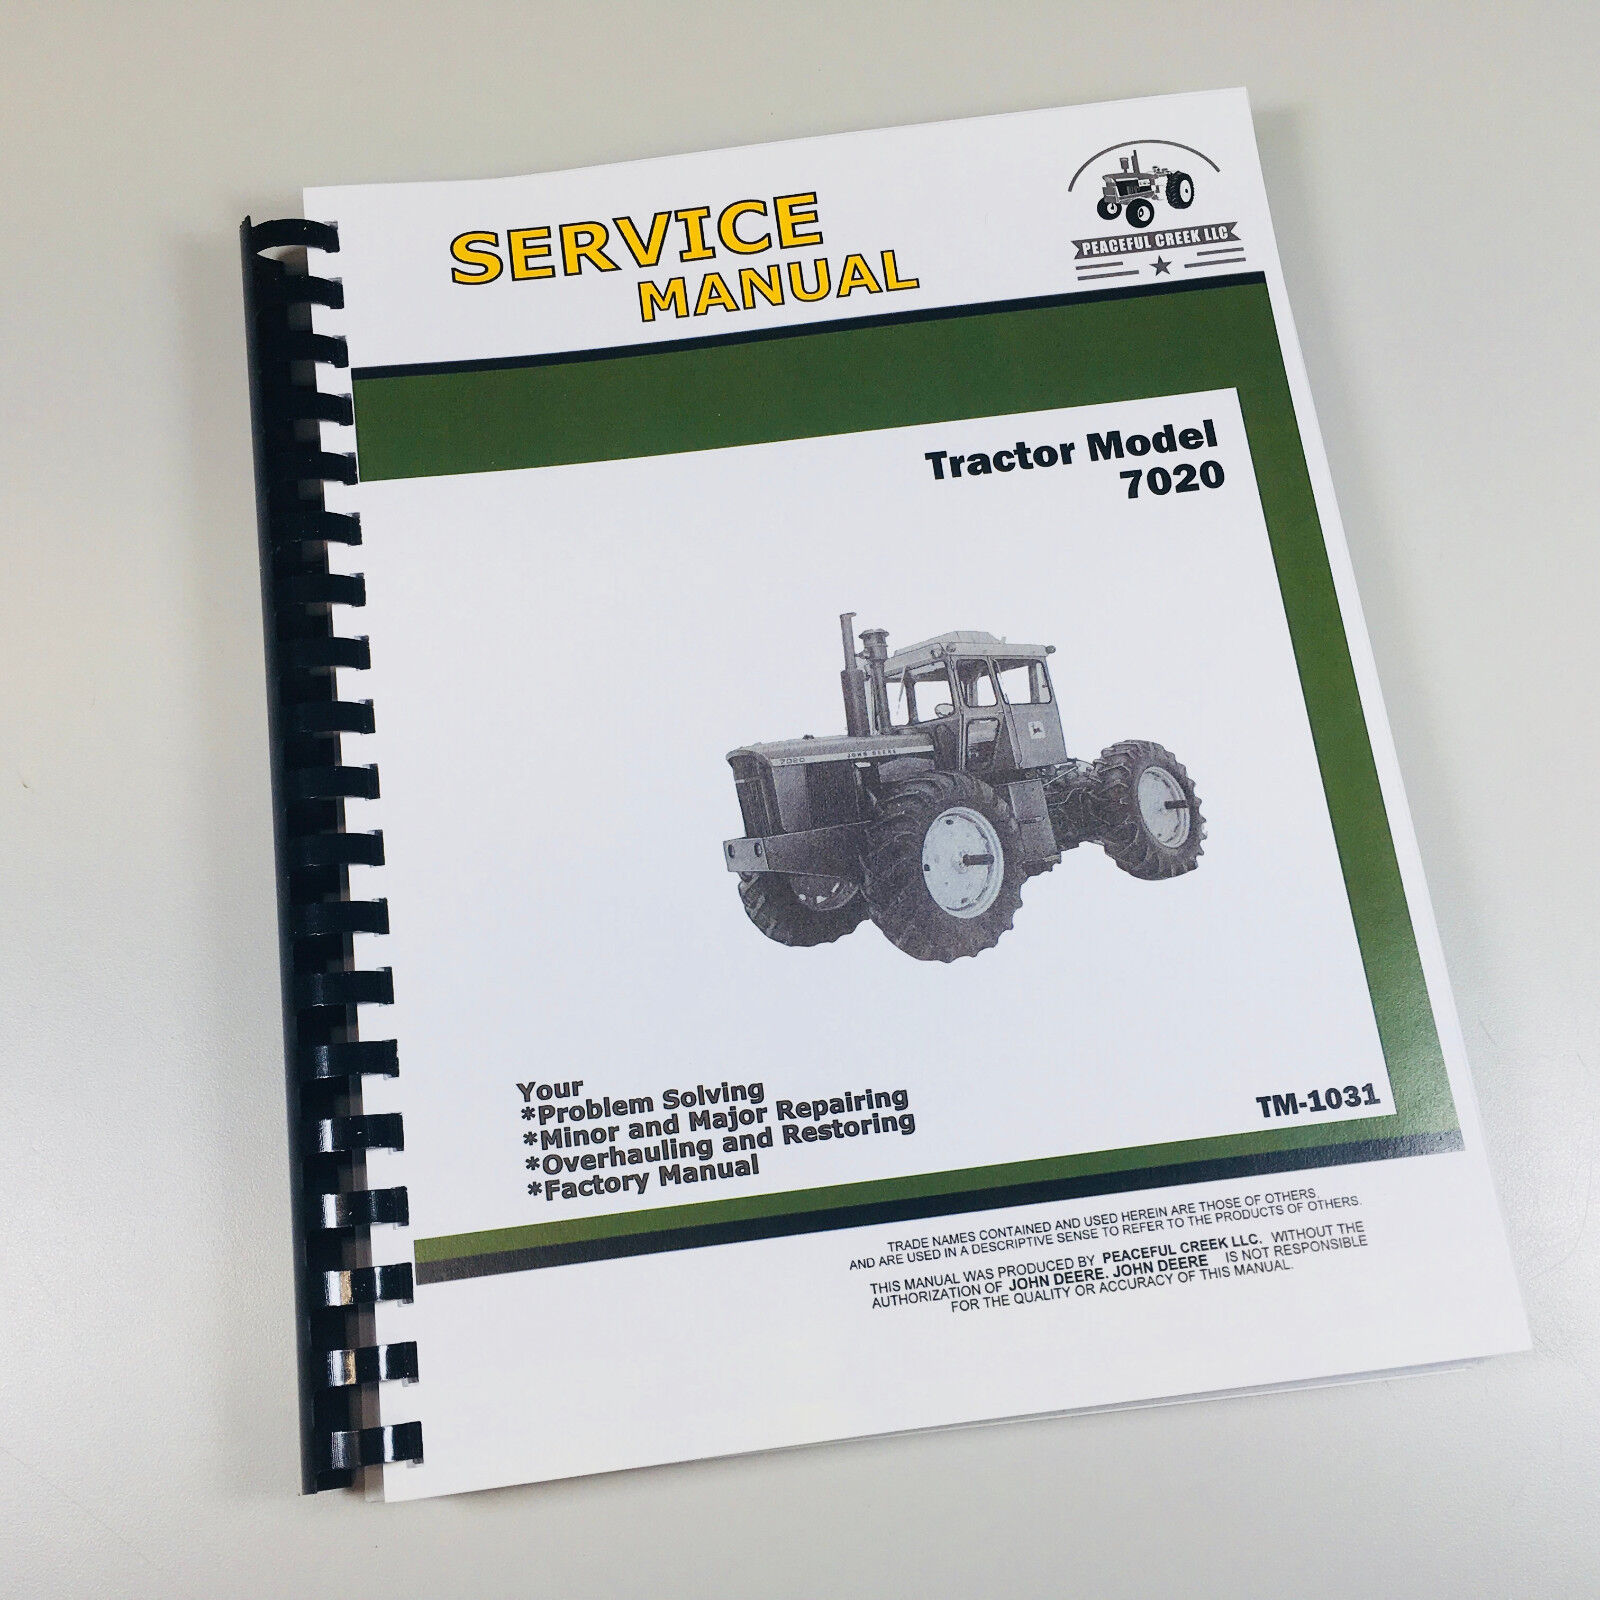 service manual for john deere 7020 tractor technical repair shopdetails about service manual for john deere 7020 tractor technical repair shop book ovhl